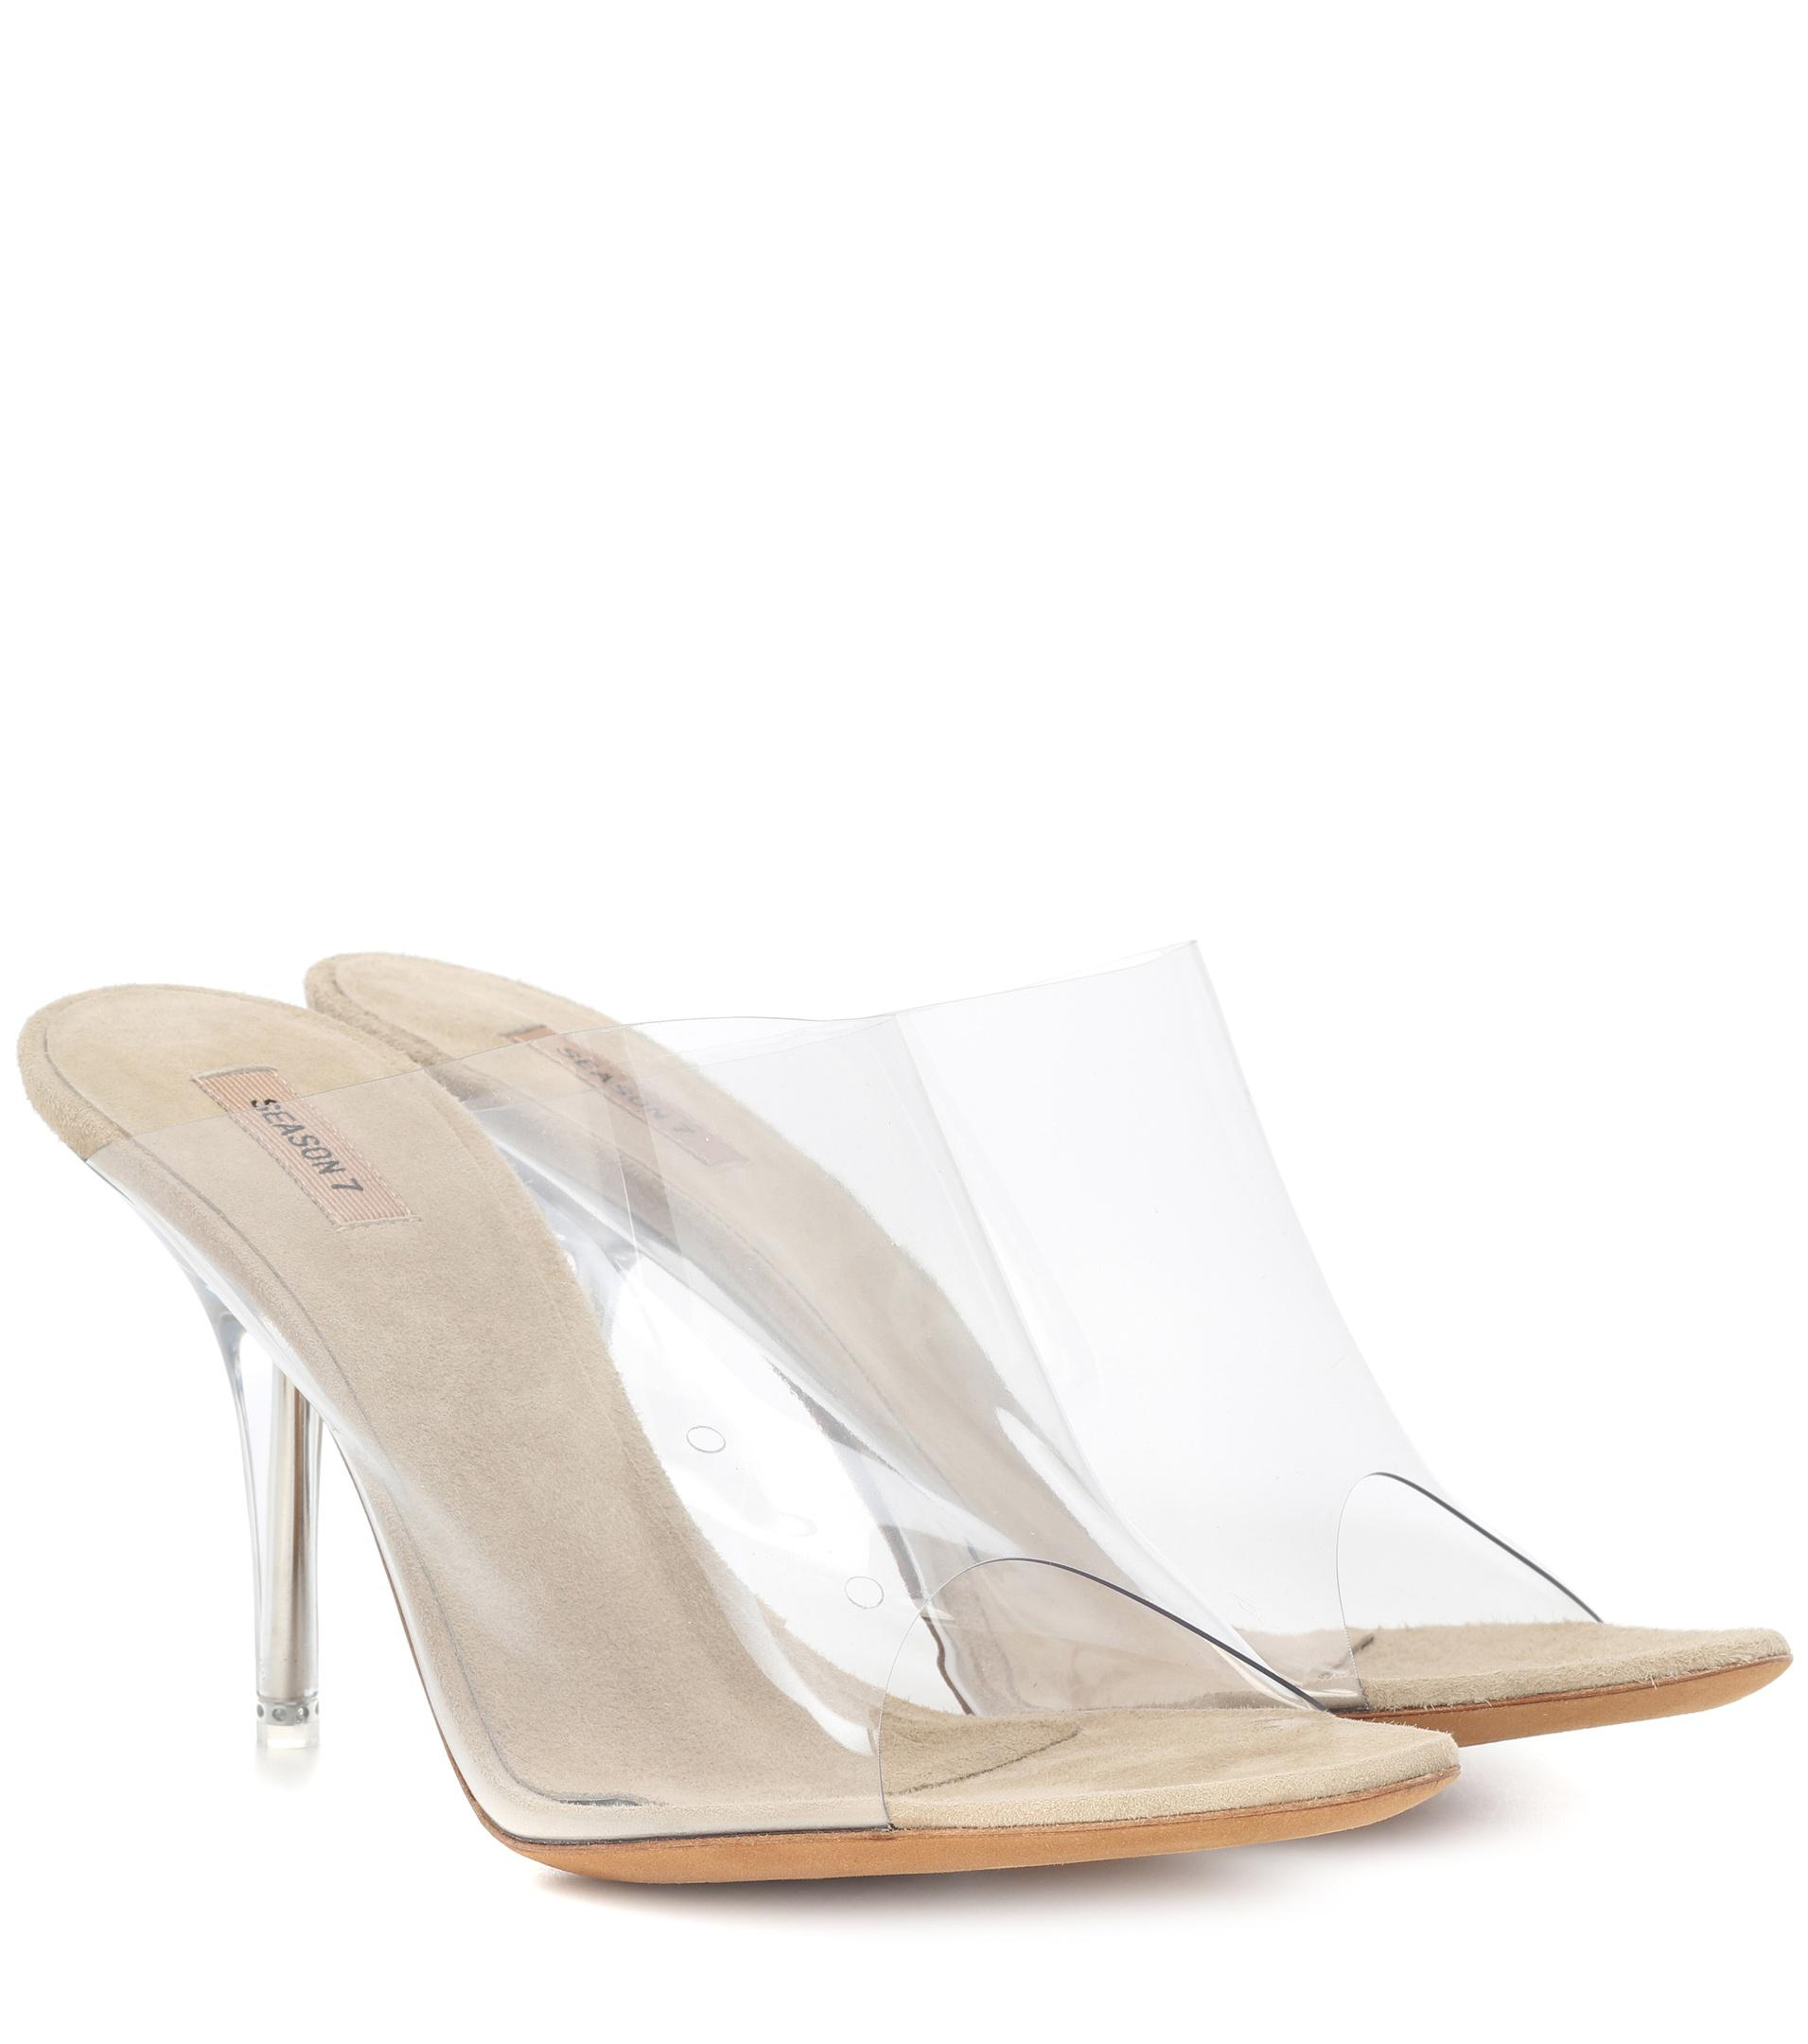 c81418492a8 Yeezy Transparent Mules (season 7) in White - Lyst